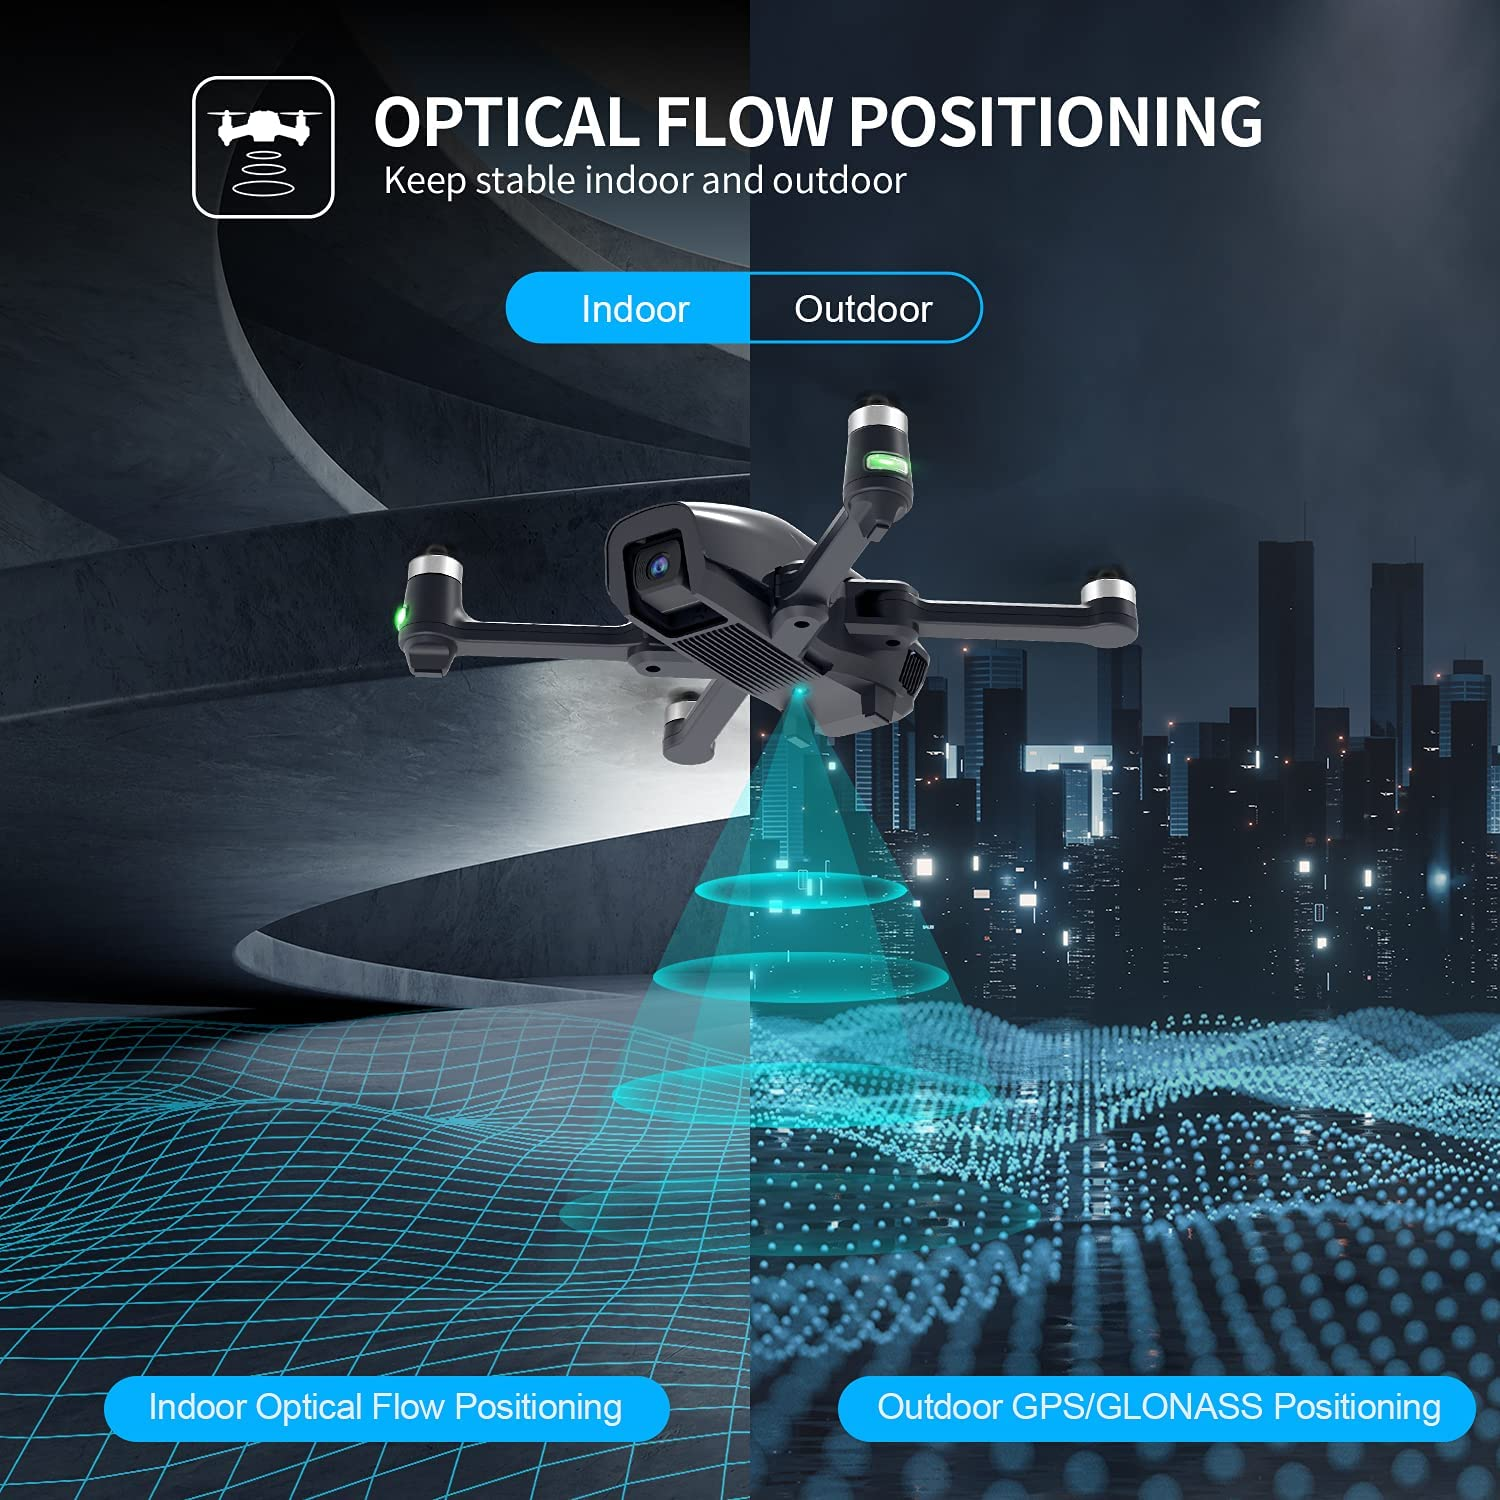 HS 710 Optical Flow Positioning